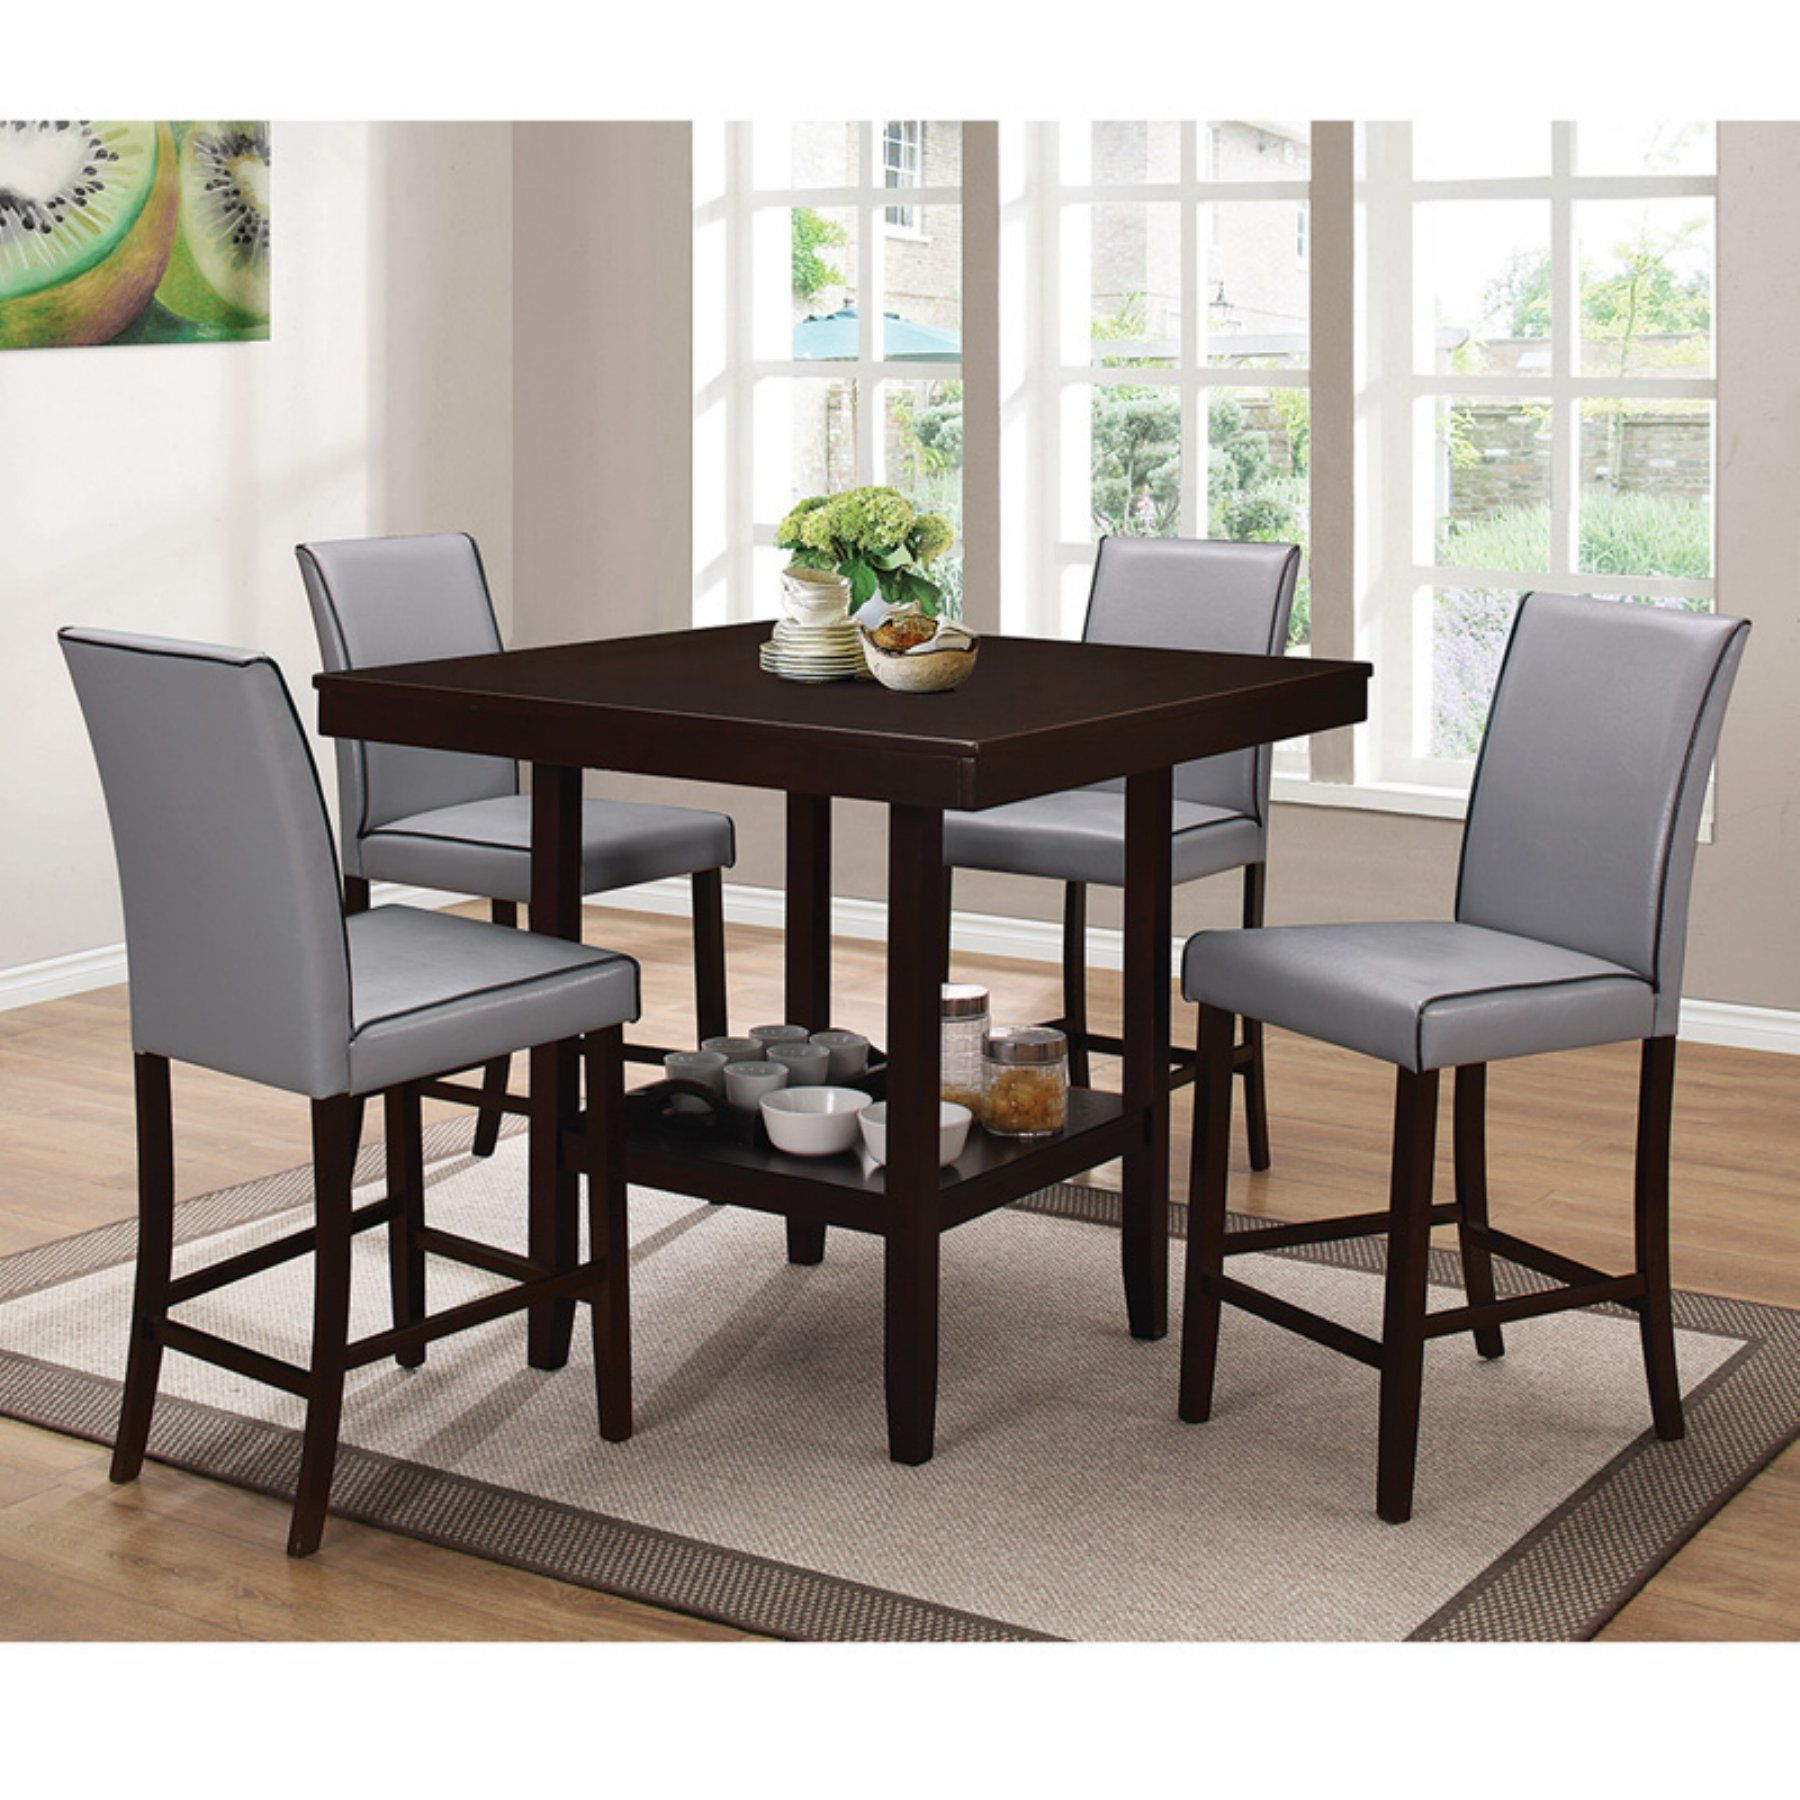 Home Source Industries Grigio Counter Height Dining Table H 6030 T Square Dining Tables Dining Table With Storage Faux Marble Dining Table